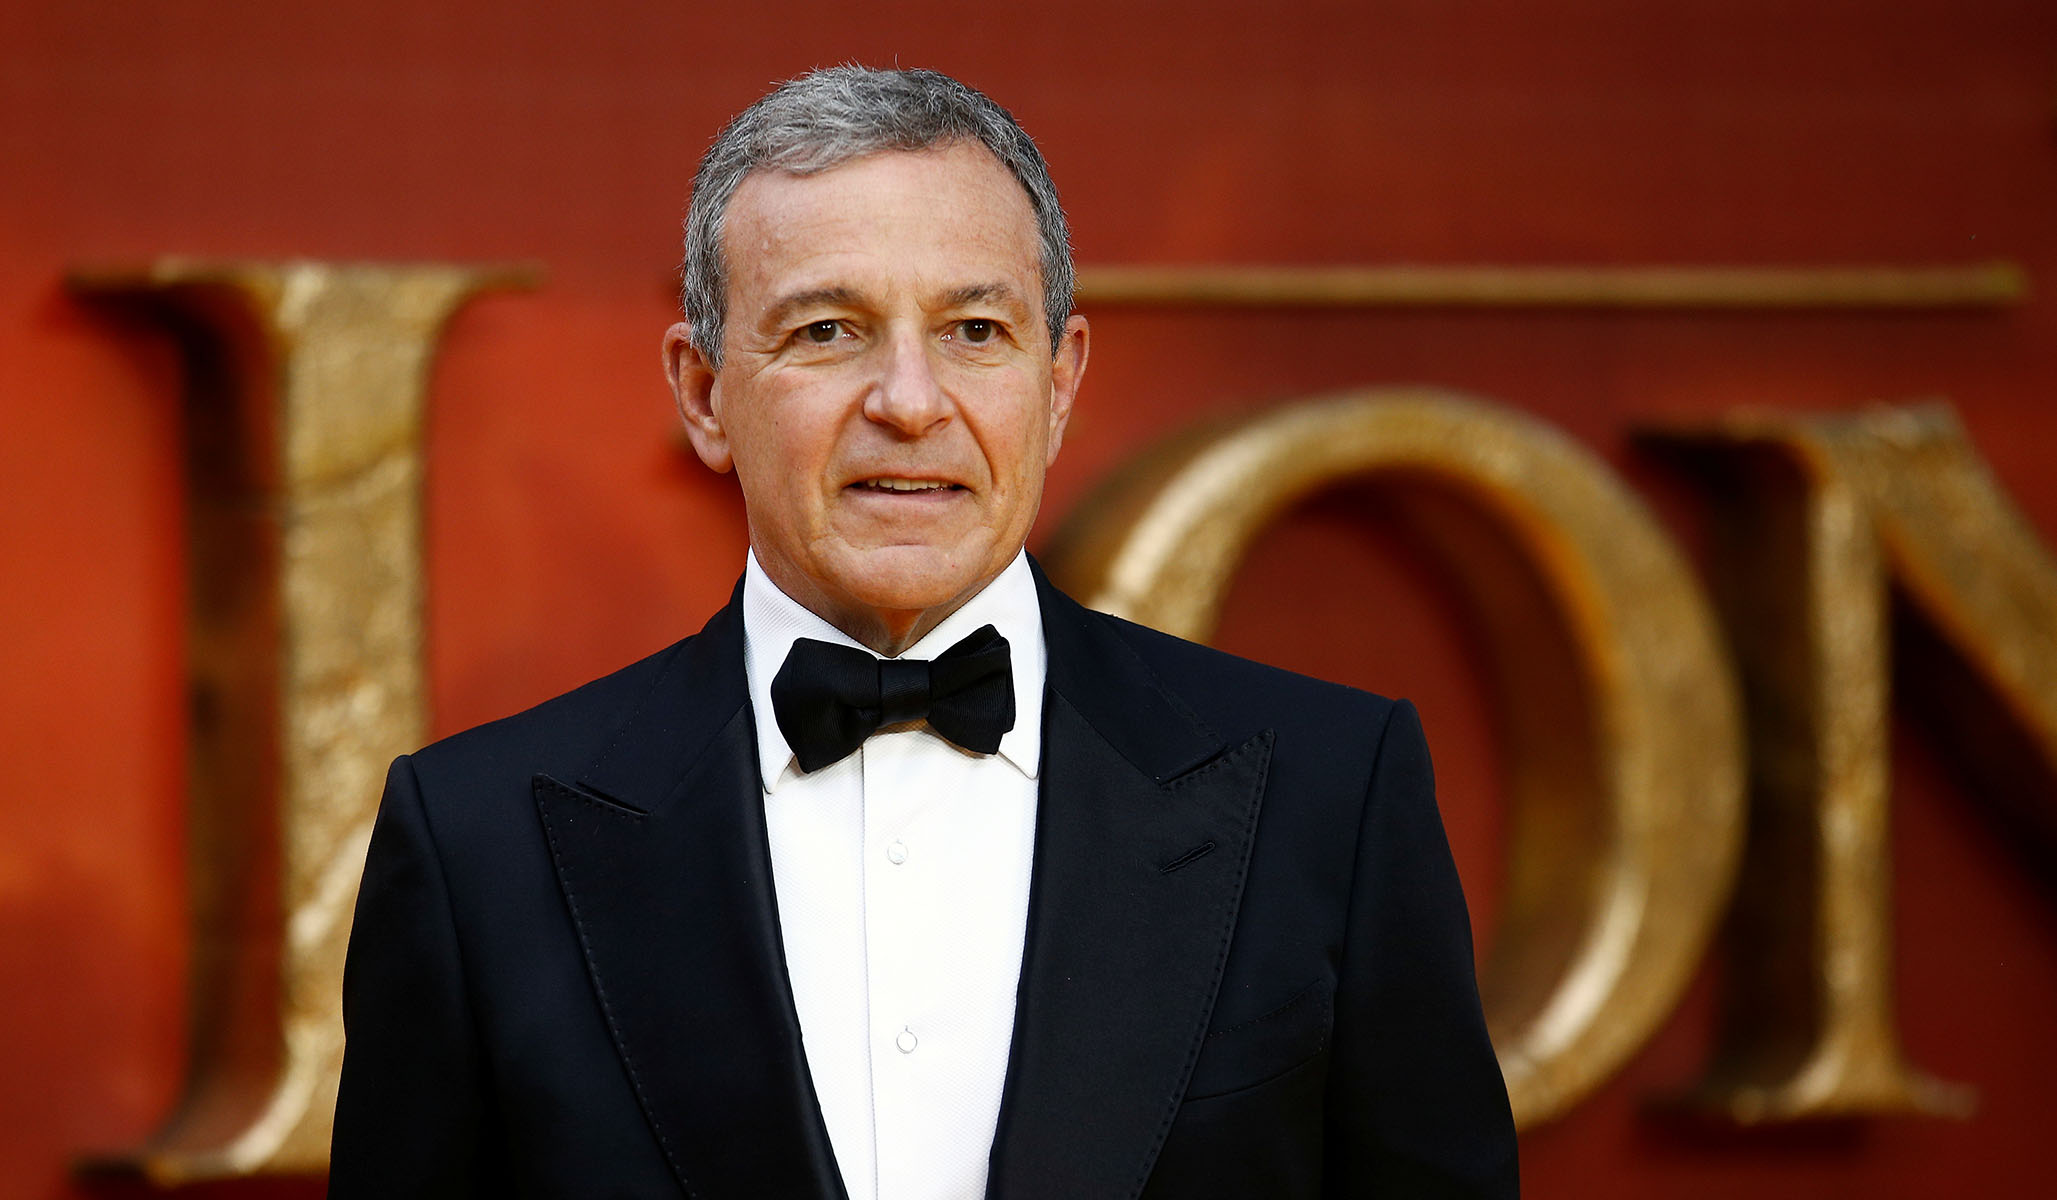 Disney CEO Refuses to Comment on China Controversies, Fearing 'Harm' to Company